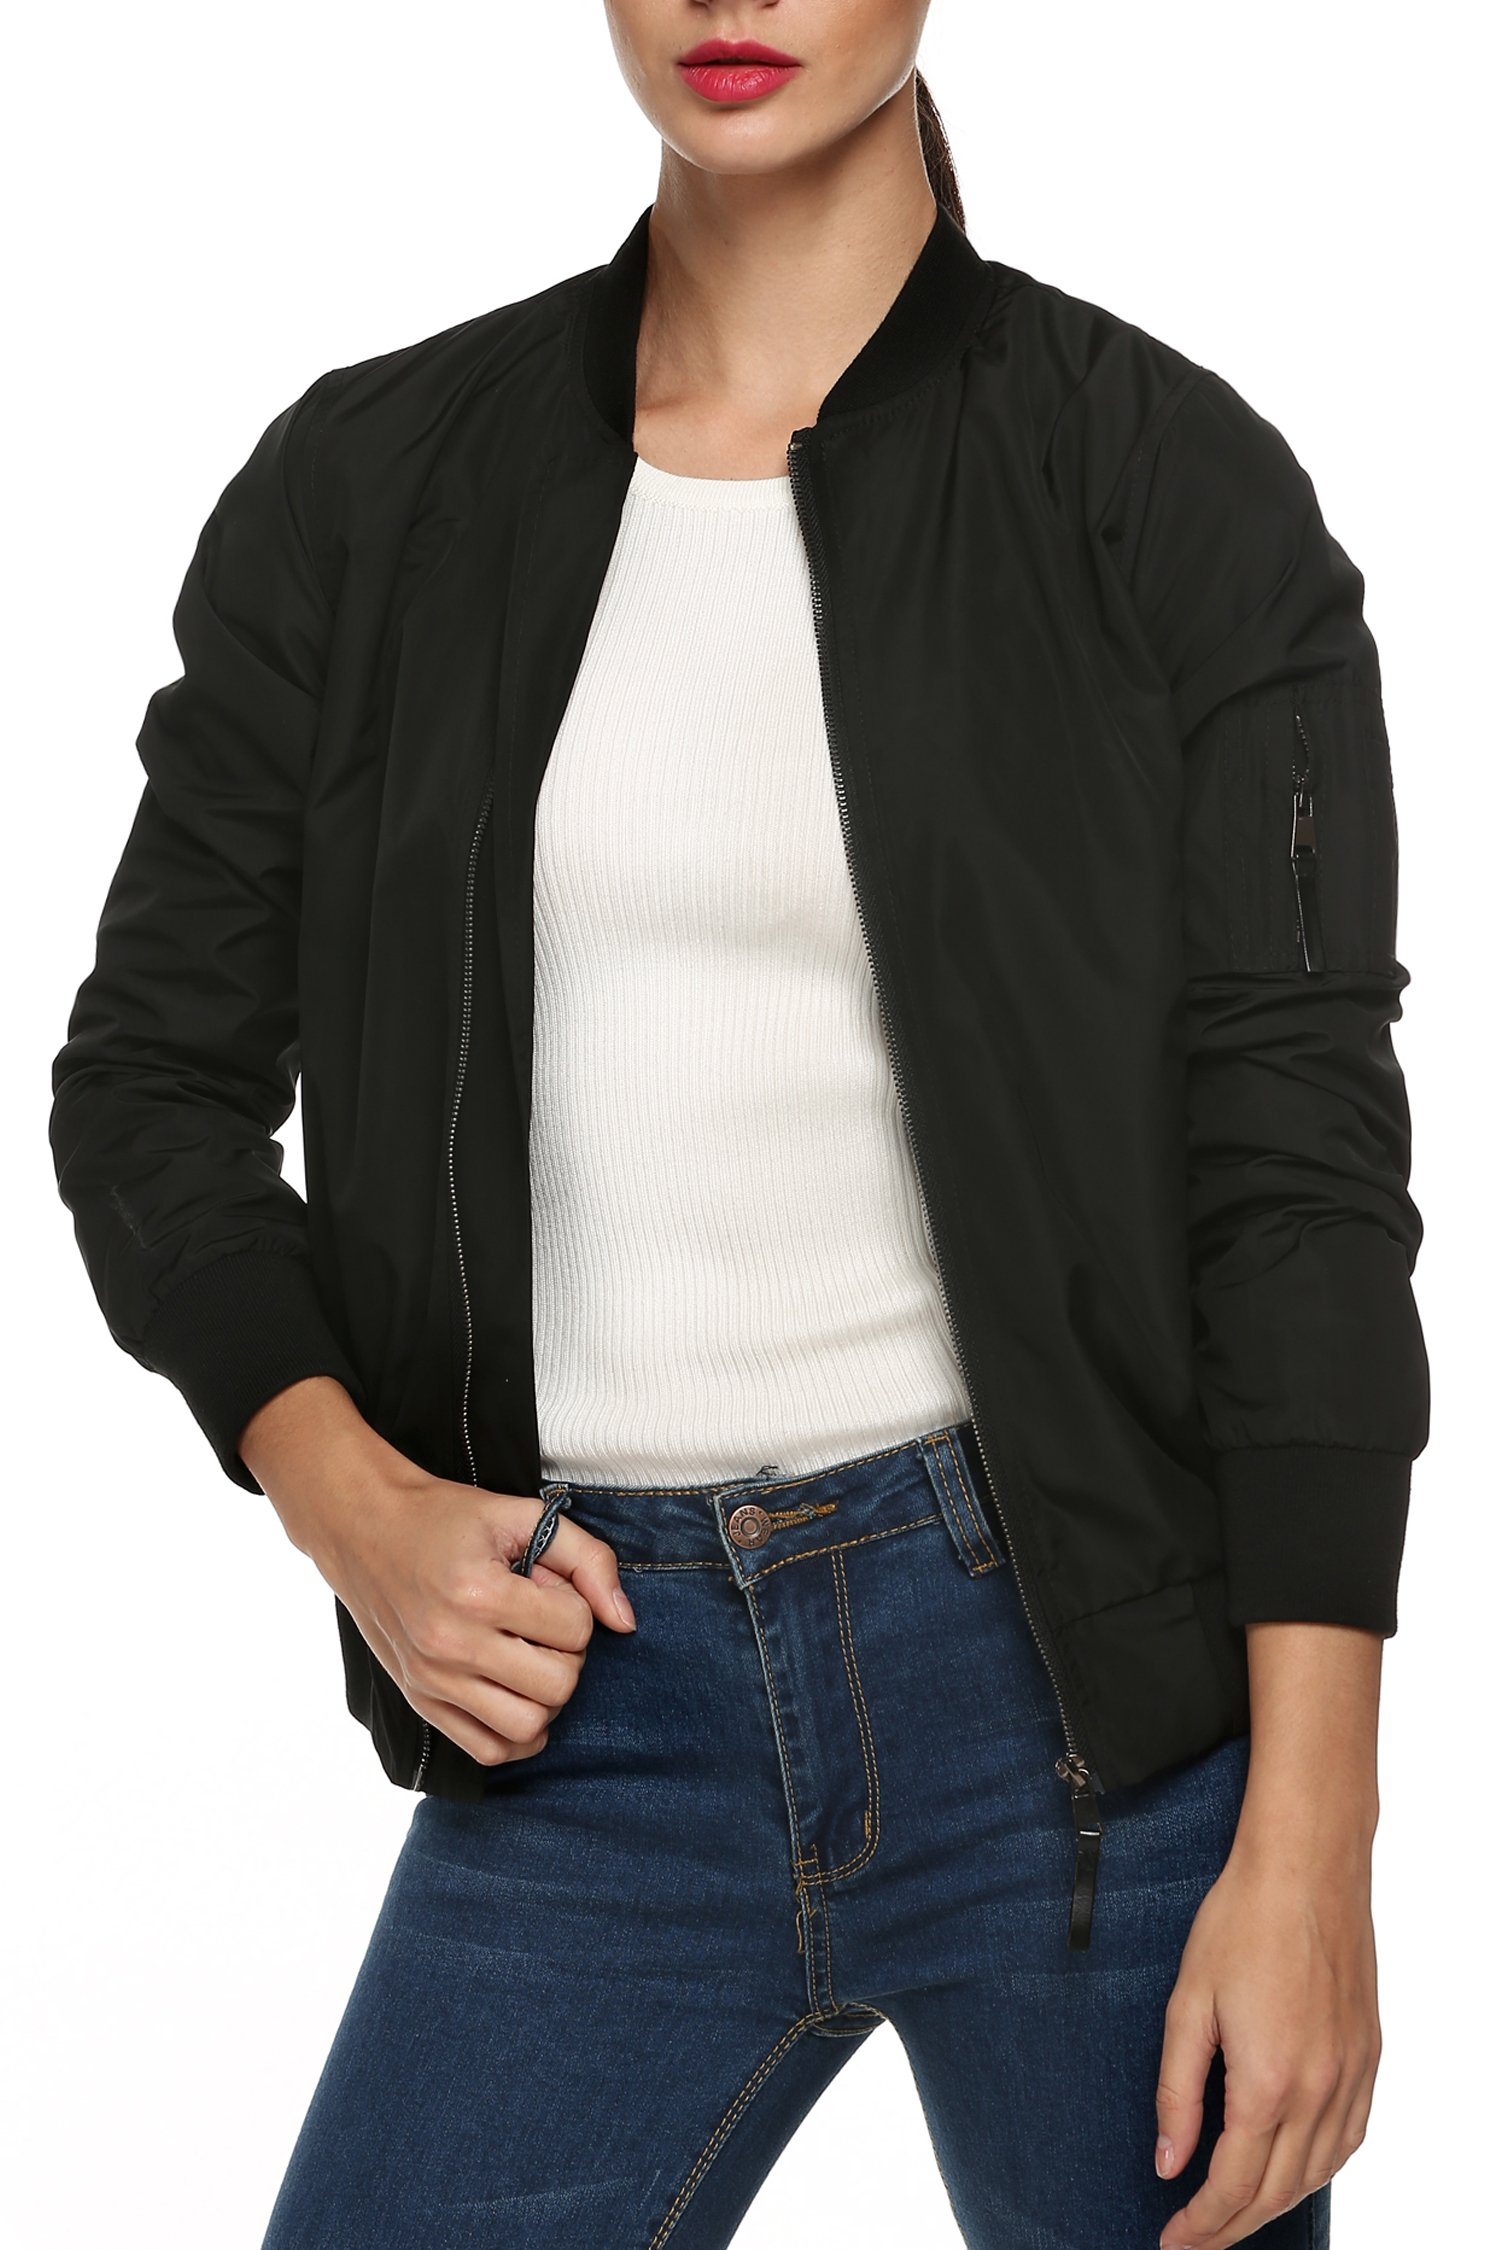 Zeagoo Womens Classic Quilted Jacket Short Bomber Jacket Coat, Black New, Small by Zeagoo